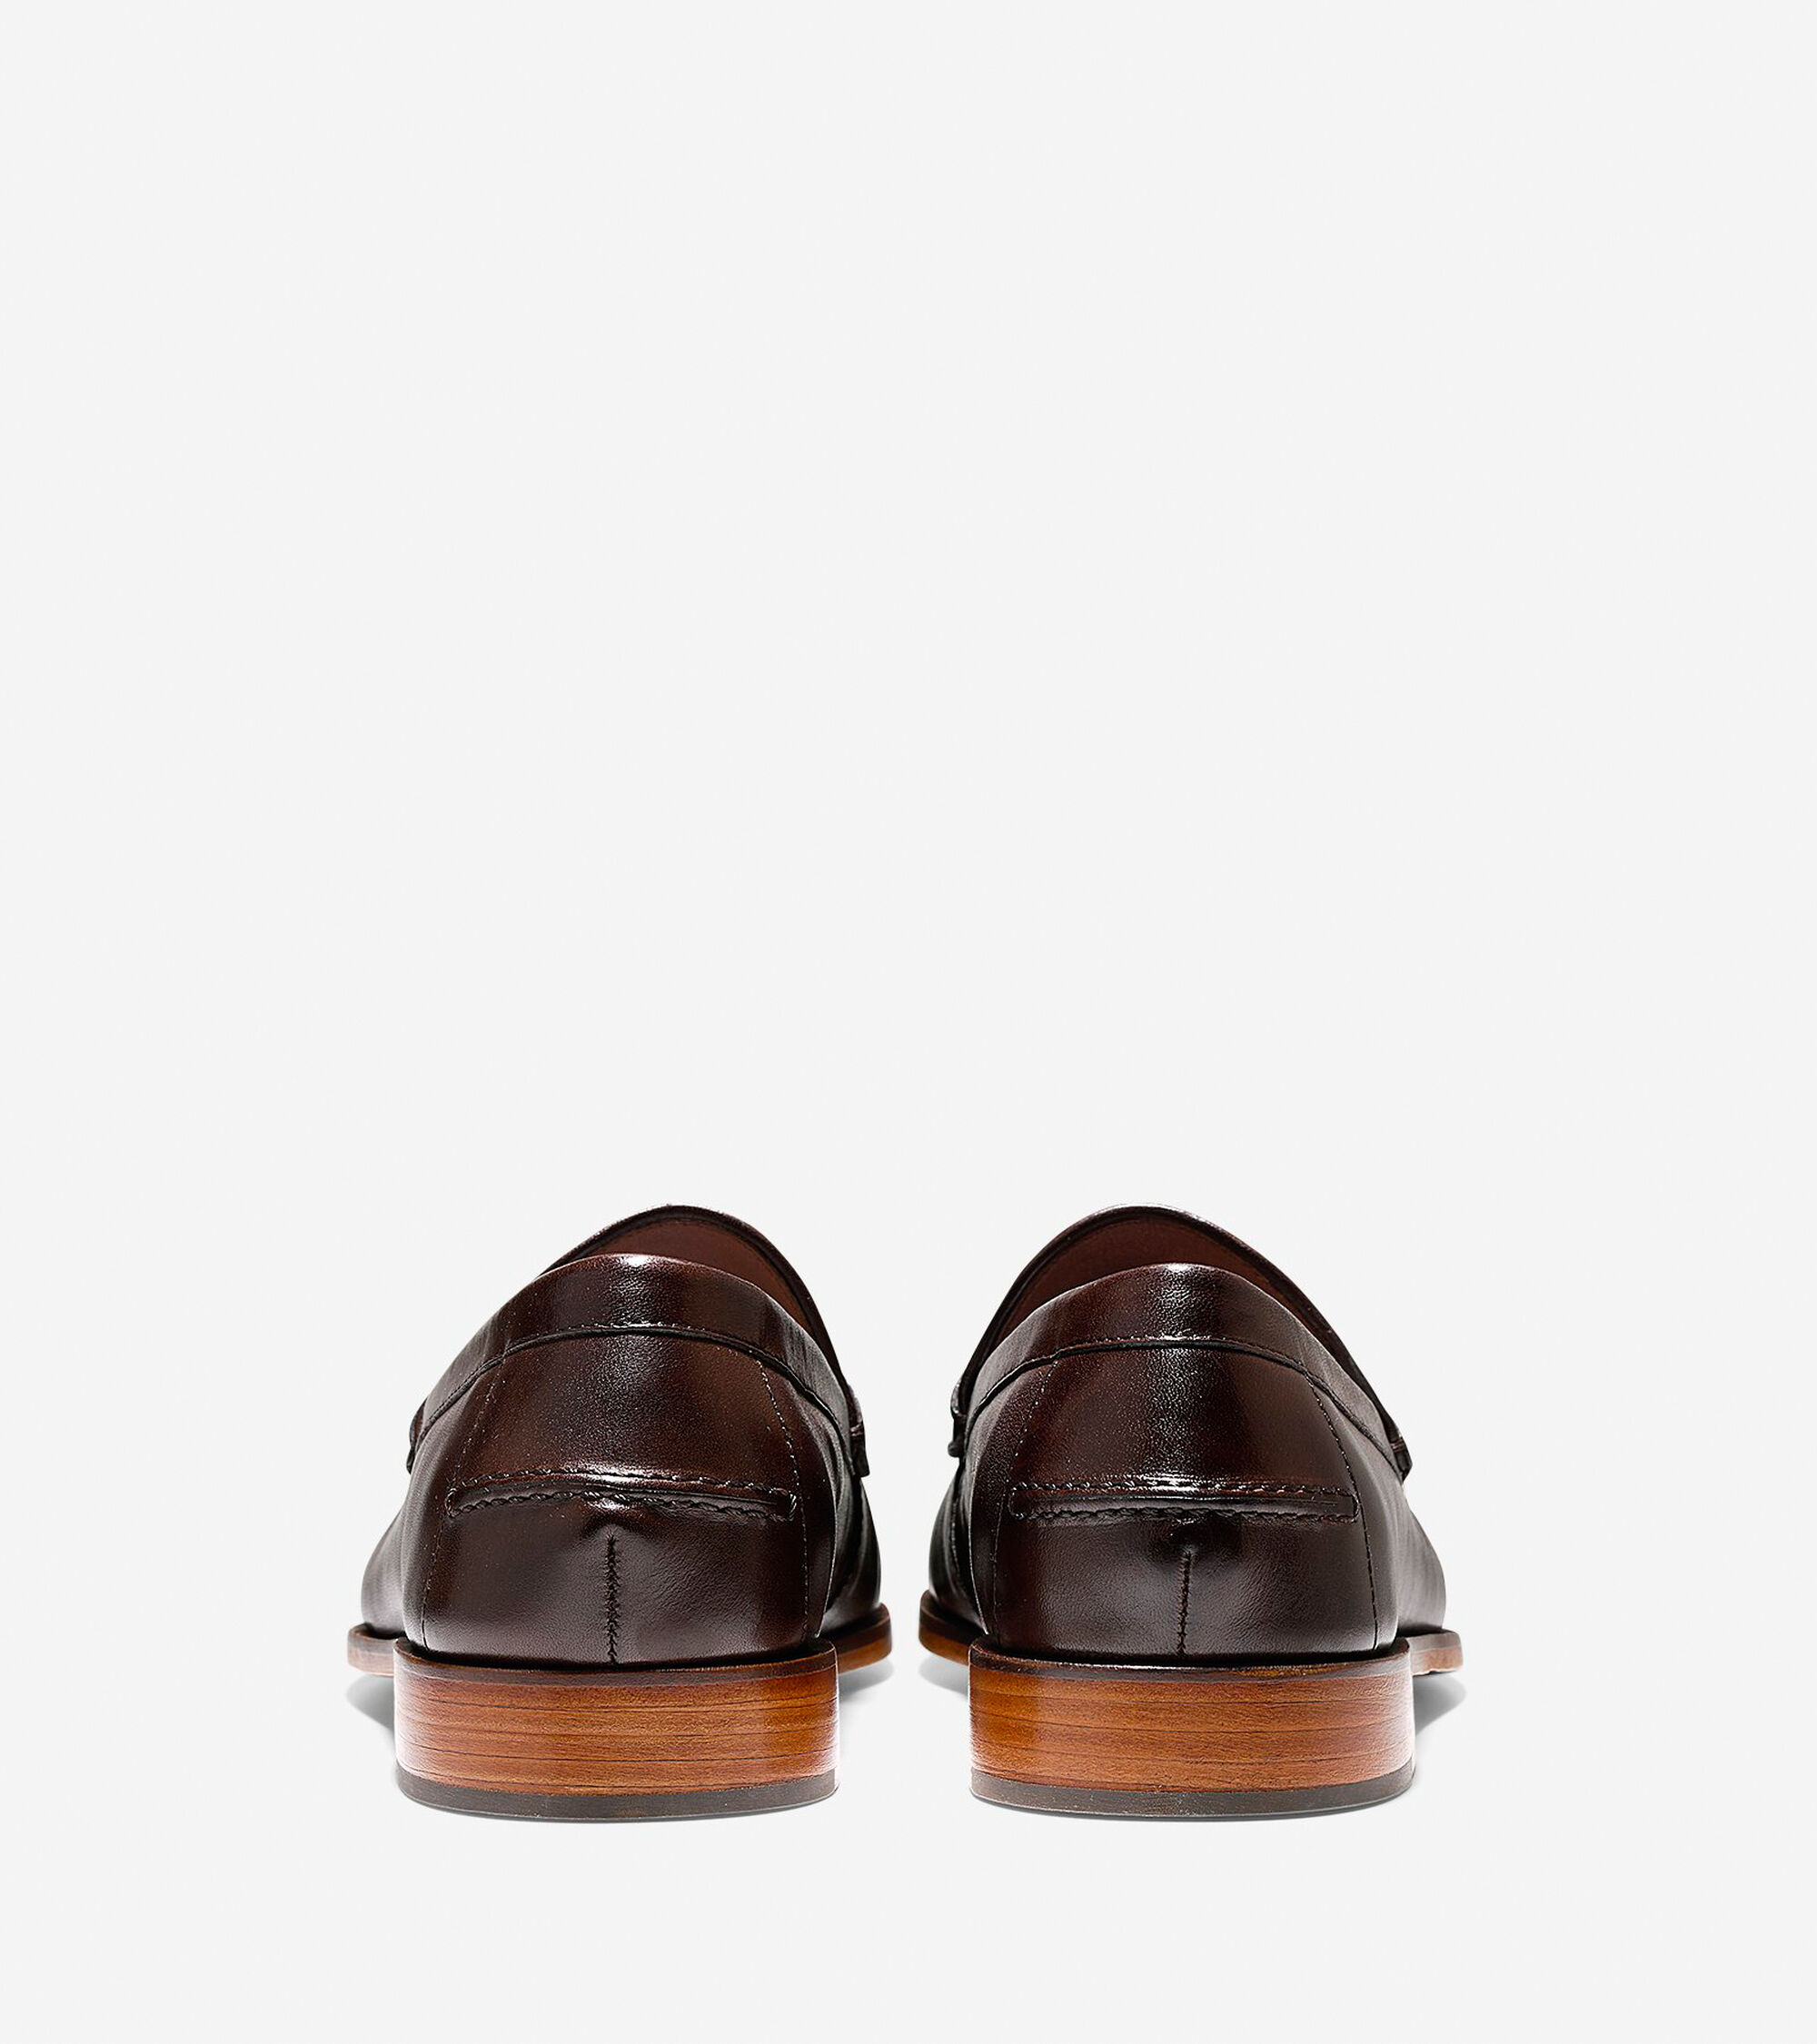 ed1aa081cfa Mens Pinch Gotham Penny Loafers in Chestnut